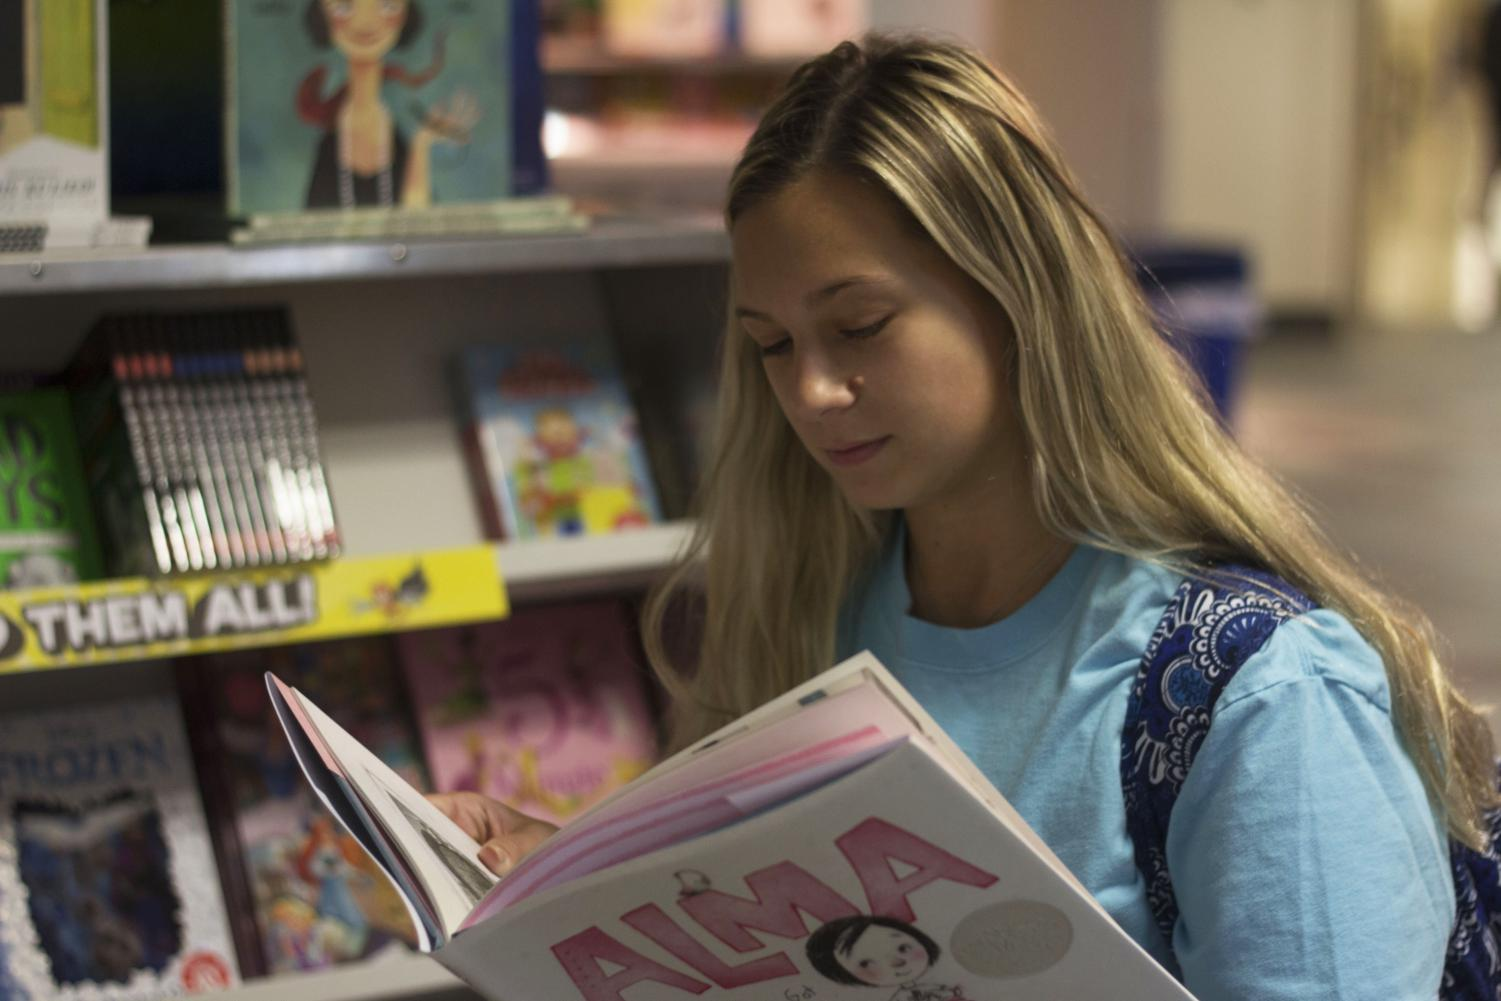 Halie Michalski, senior elementary education major, checks out the books at the Scholastic Book Fair held in Buzzard Hall on Monday. Michalski is the Vice President of Eastern's chapter of the Illinois Reading Council, which hosts the book fair.